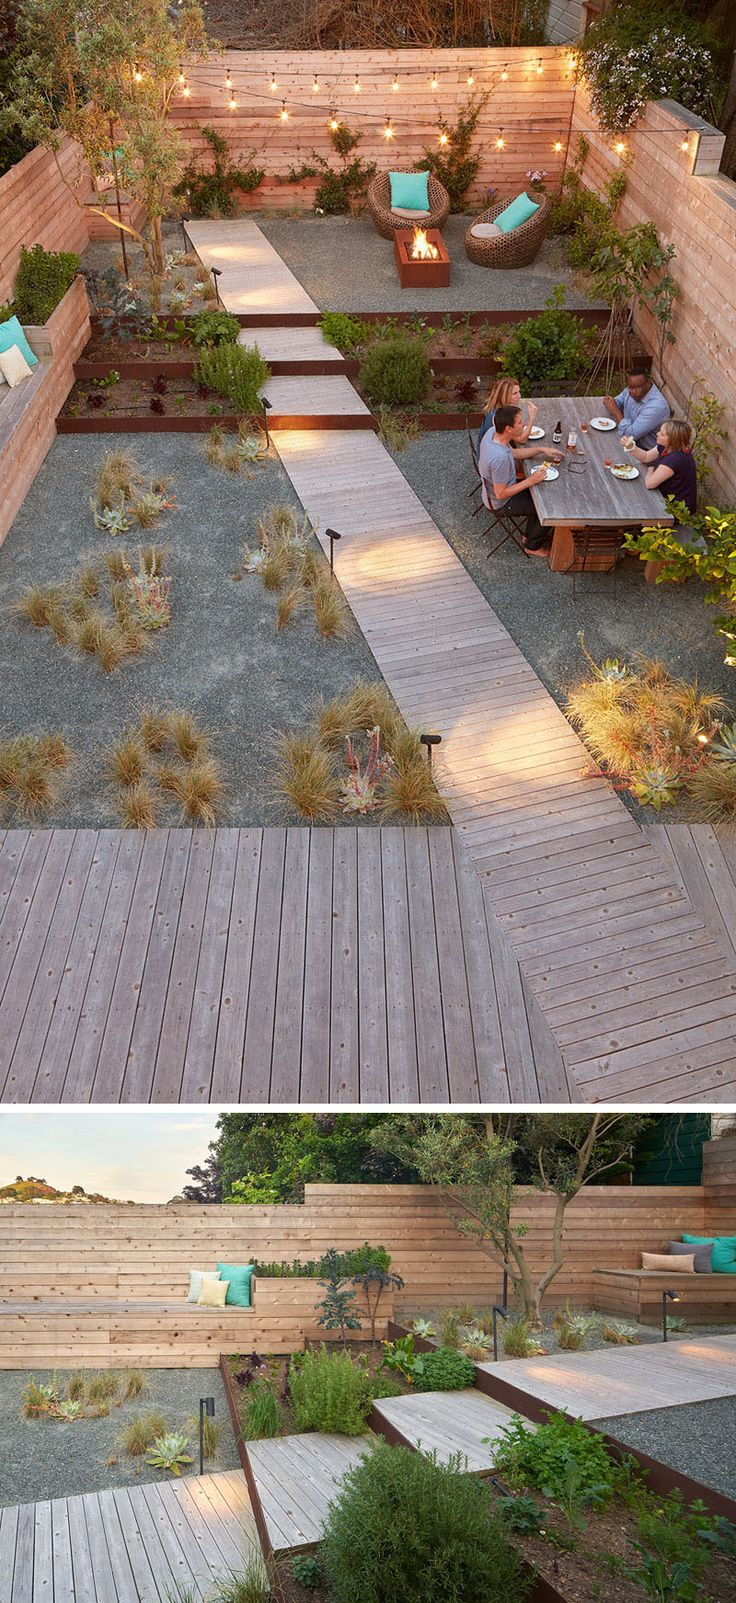 This fully landscaped backyard has had the space split up into various sections…